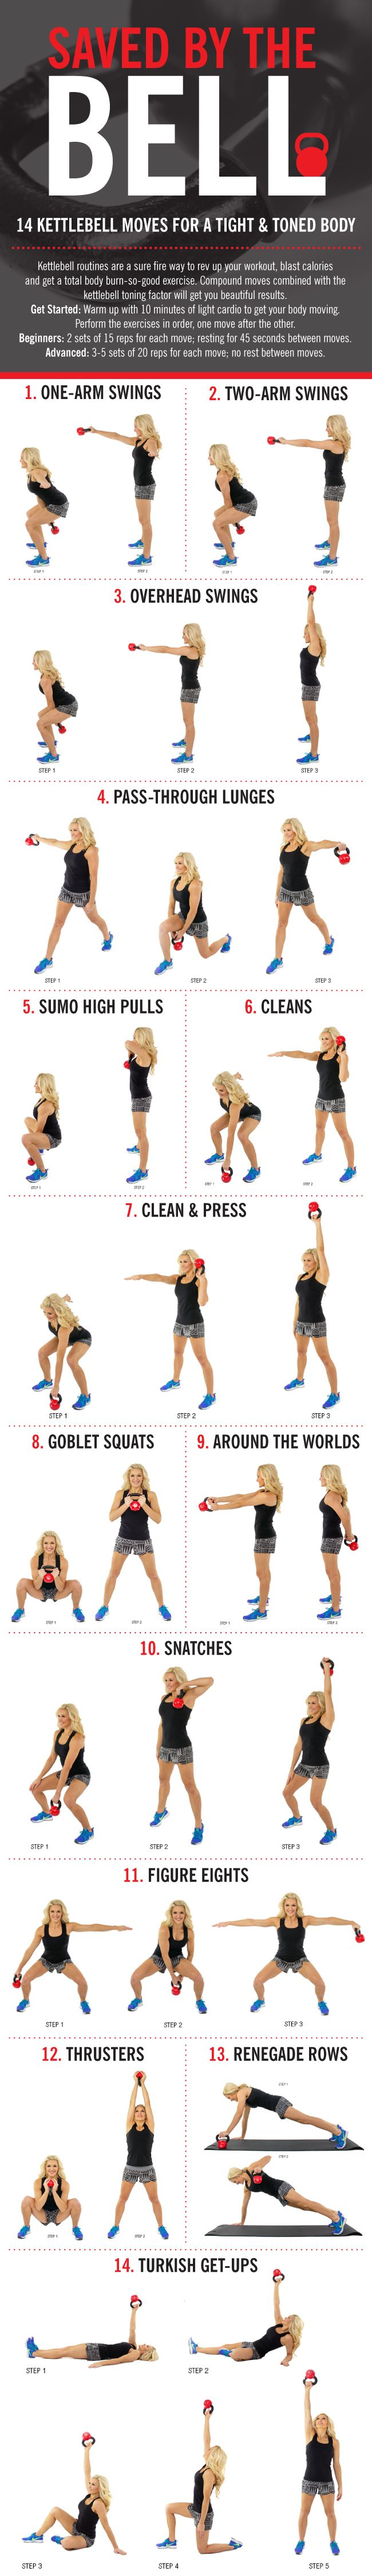 Rock through these awesome moves.